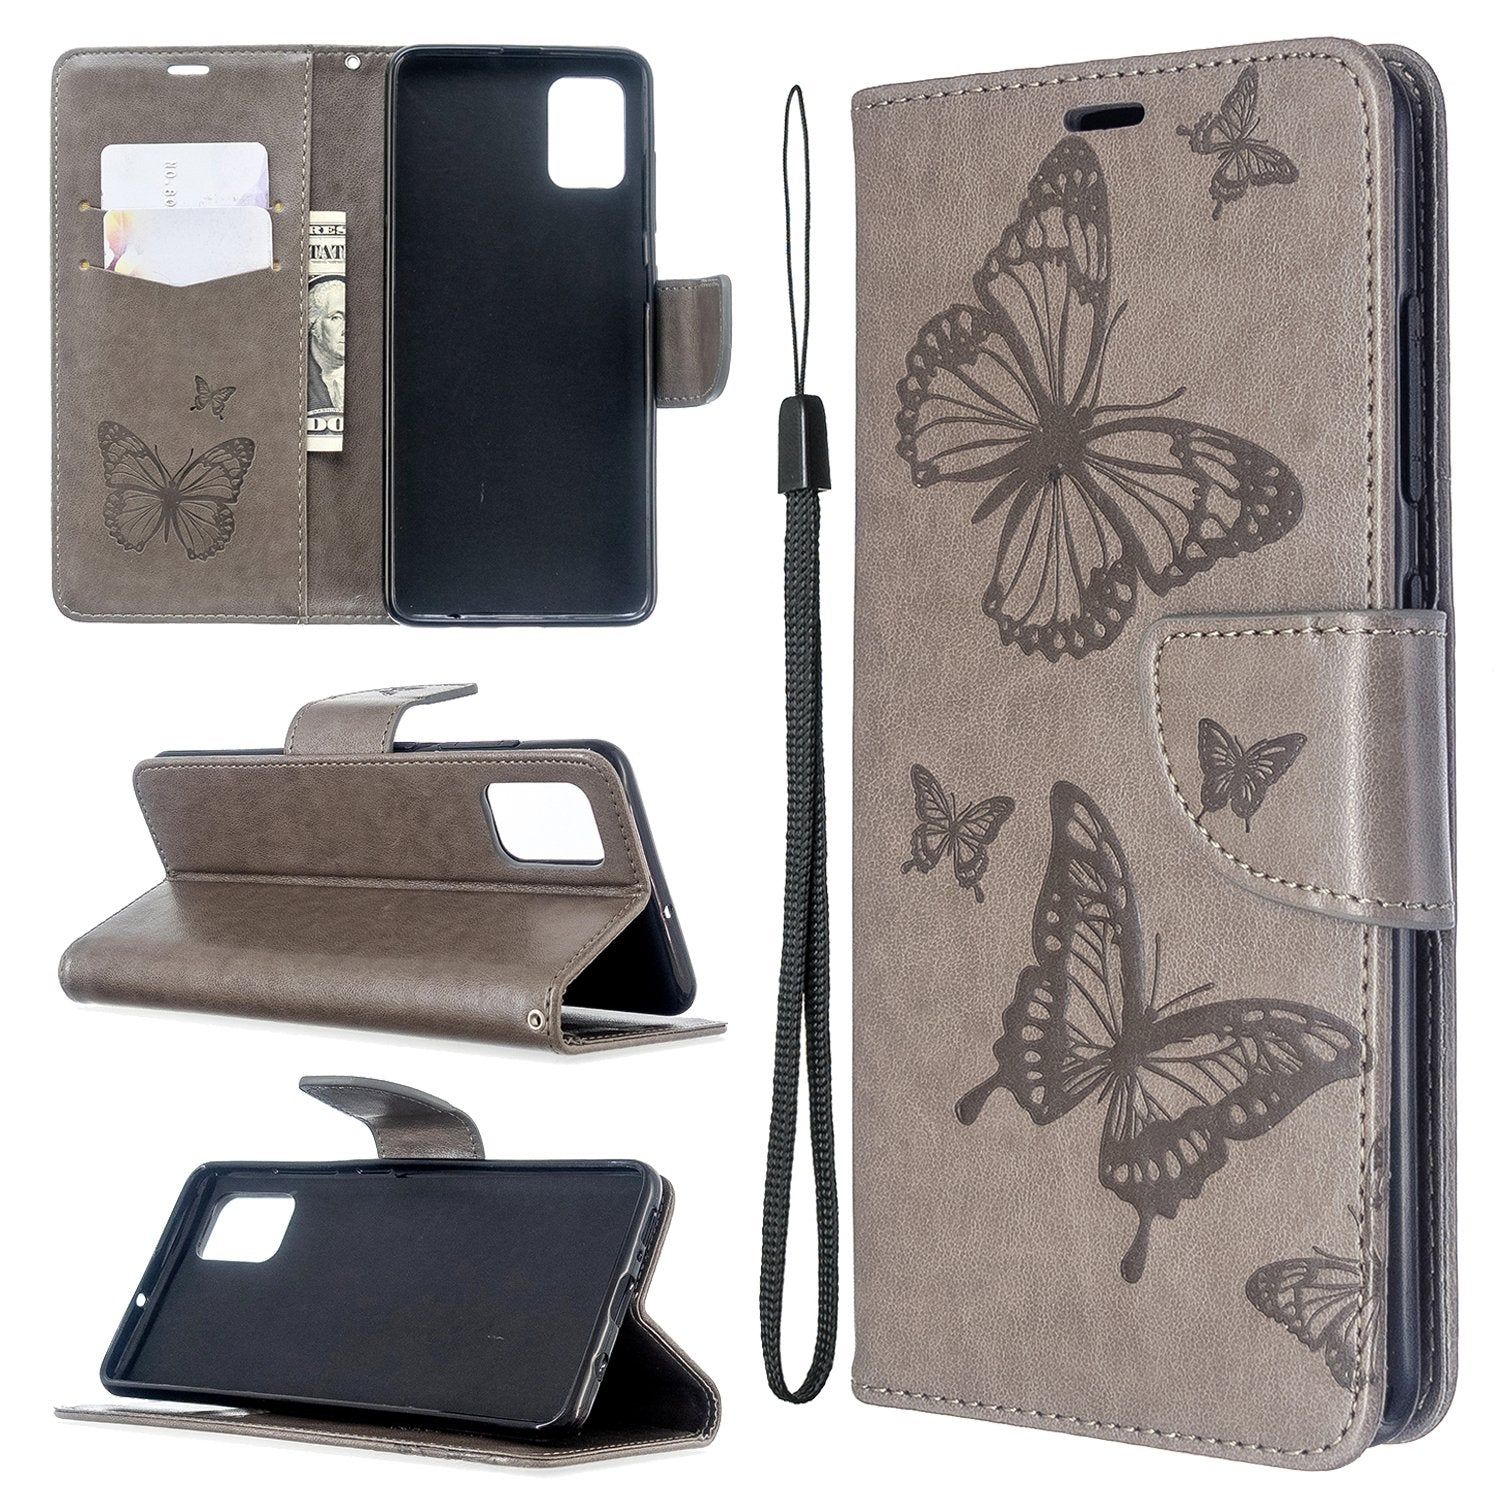 2020 Embossed Butterfly Pattern Flip Phone Case For Samsung Galaxy A51/A71